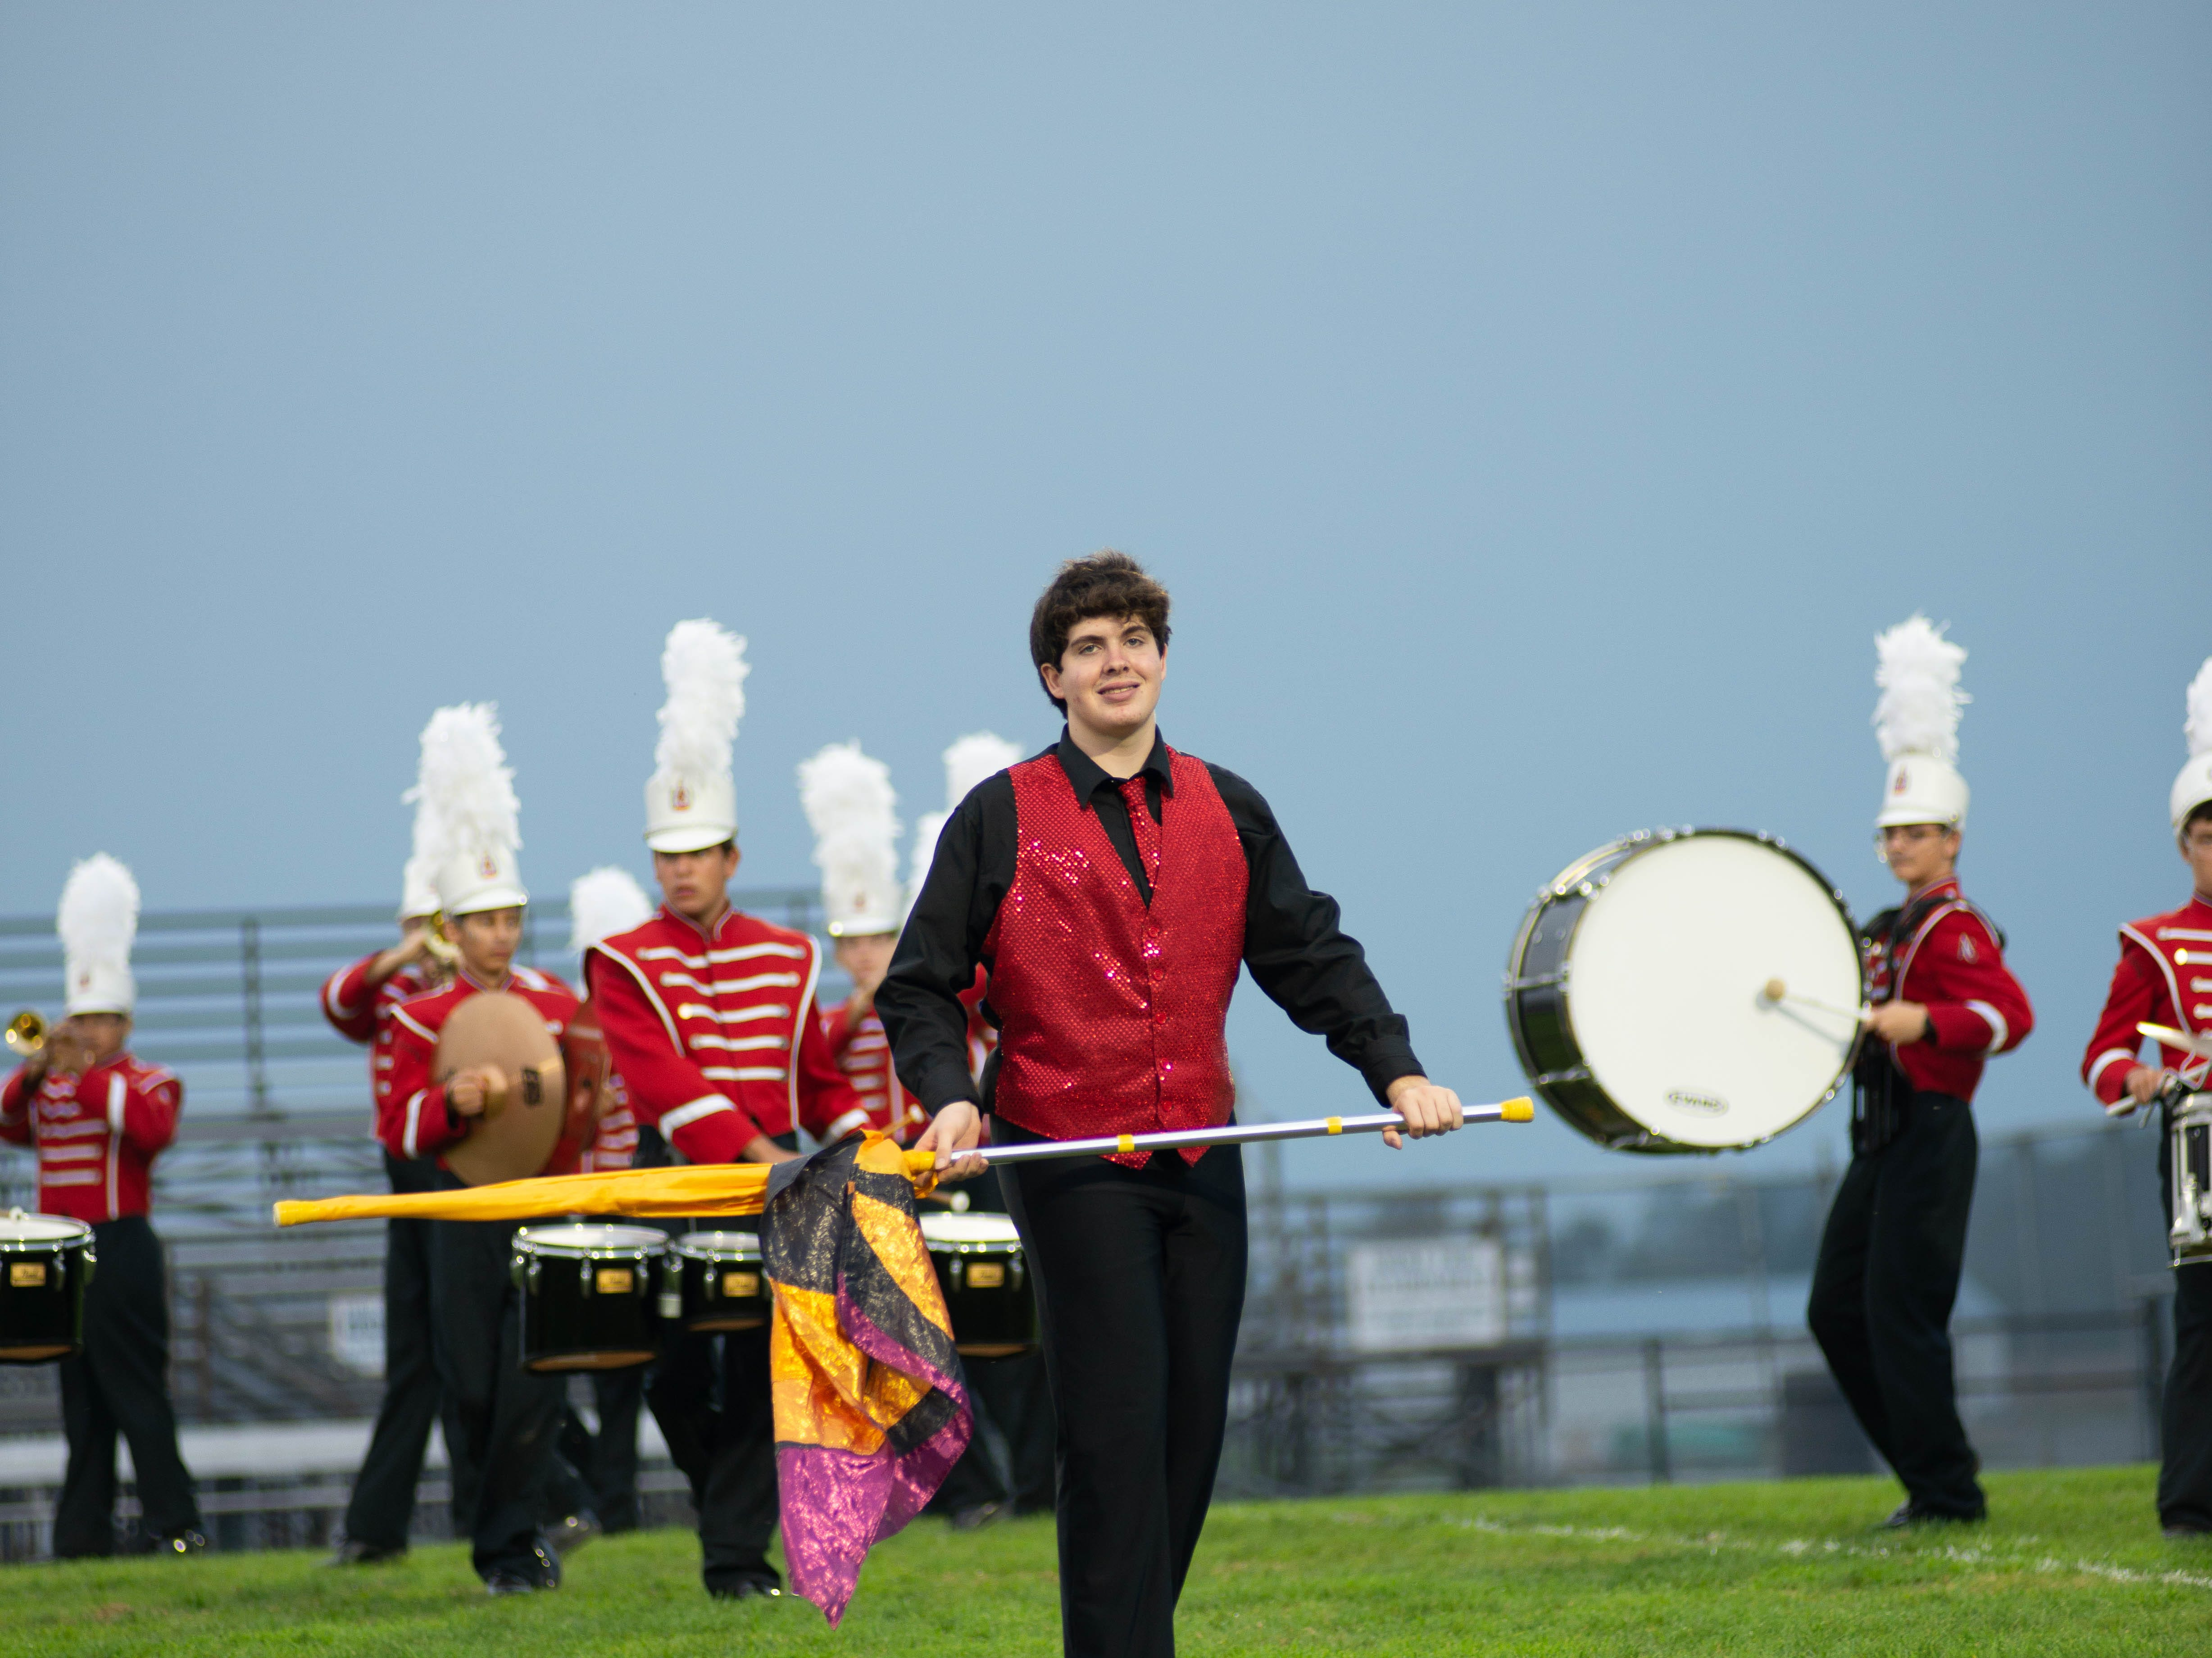 The marching bands for the six Lebanon County high schools -- Annville-Cleona, Palmyra, Northern Lebanon, Cedar Crest, Elco and Lebanon -- performed Saturday, Oct. 6 at Elco High School.